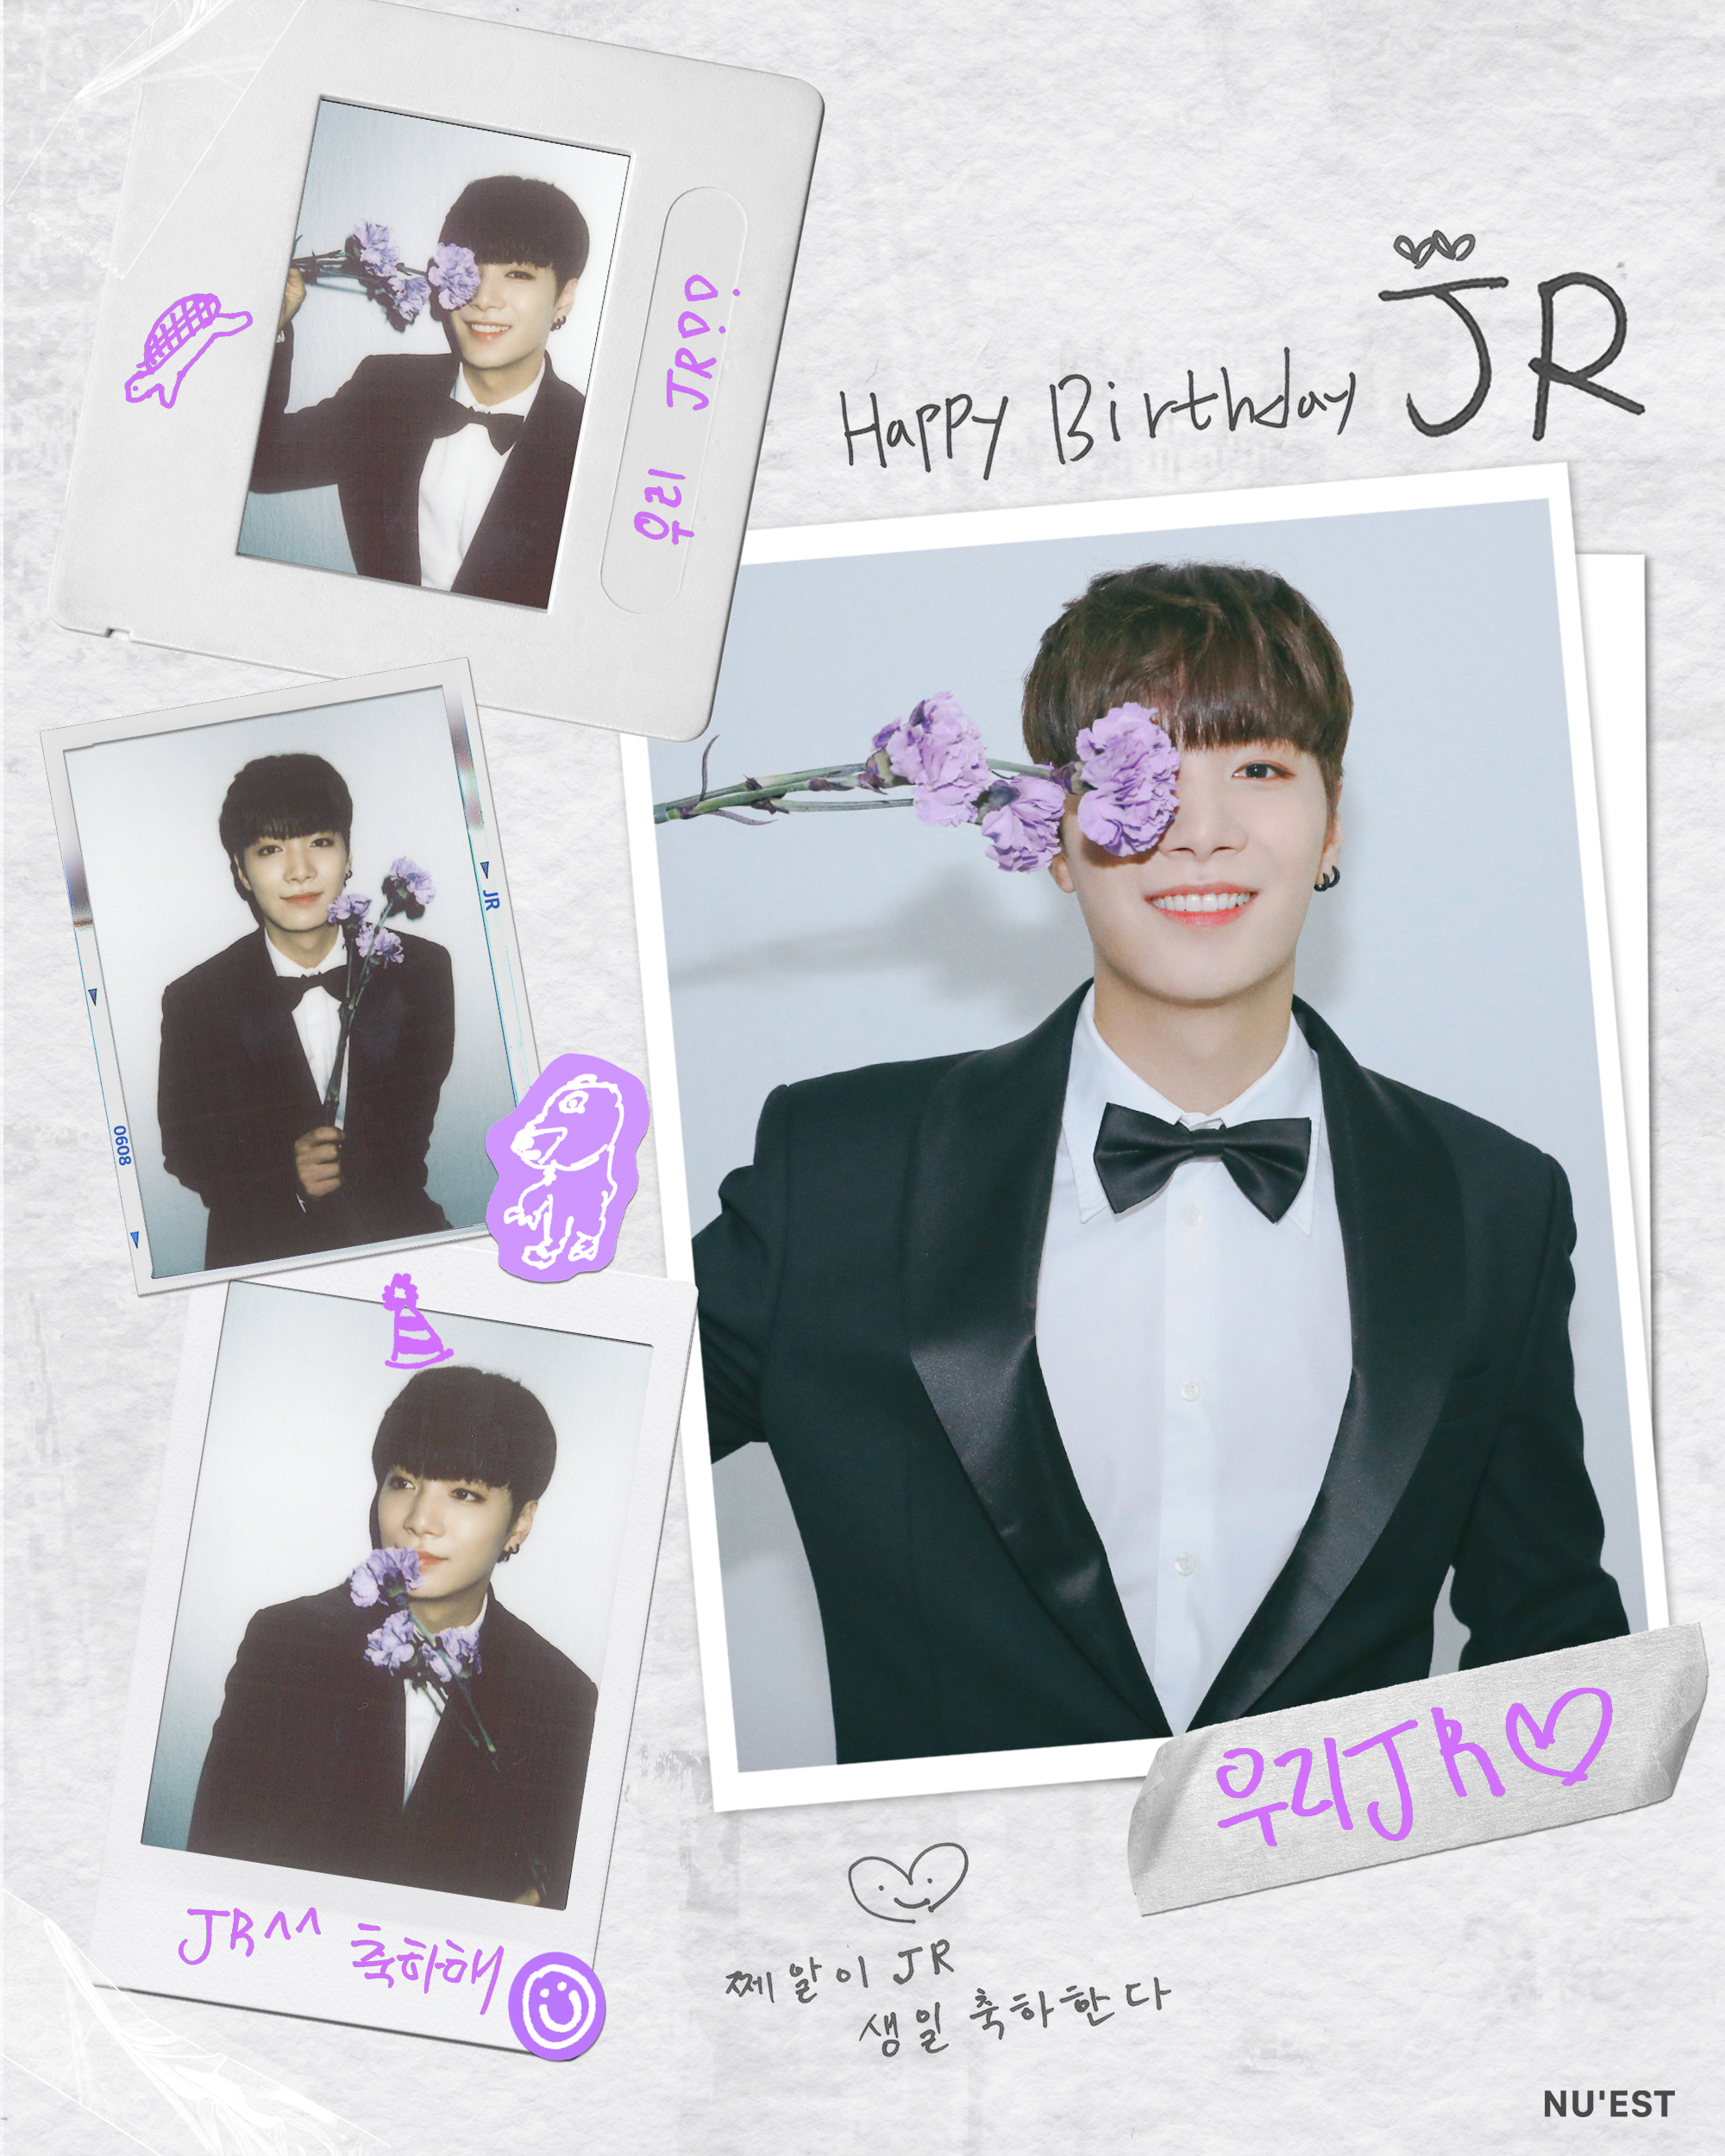 #OurOneAndOnlyJRDay